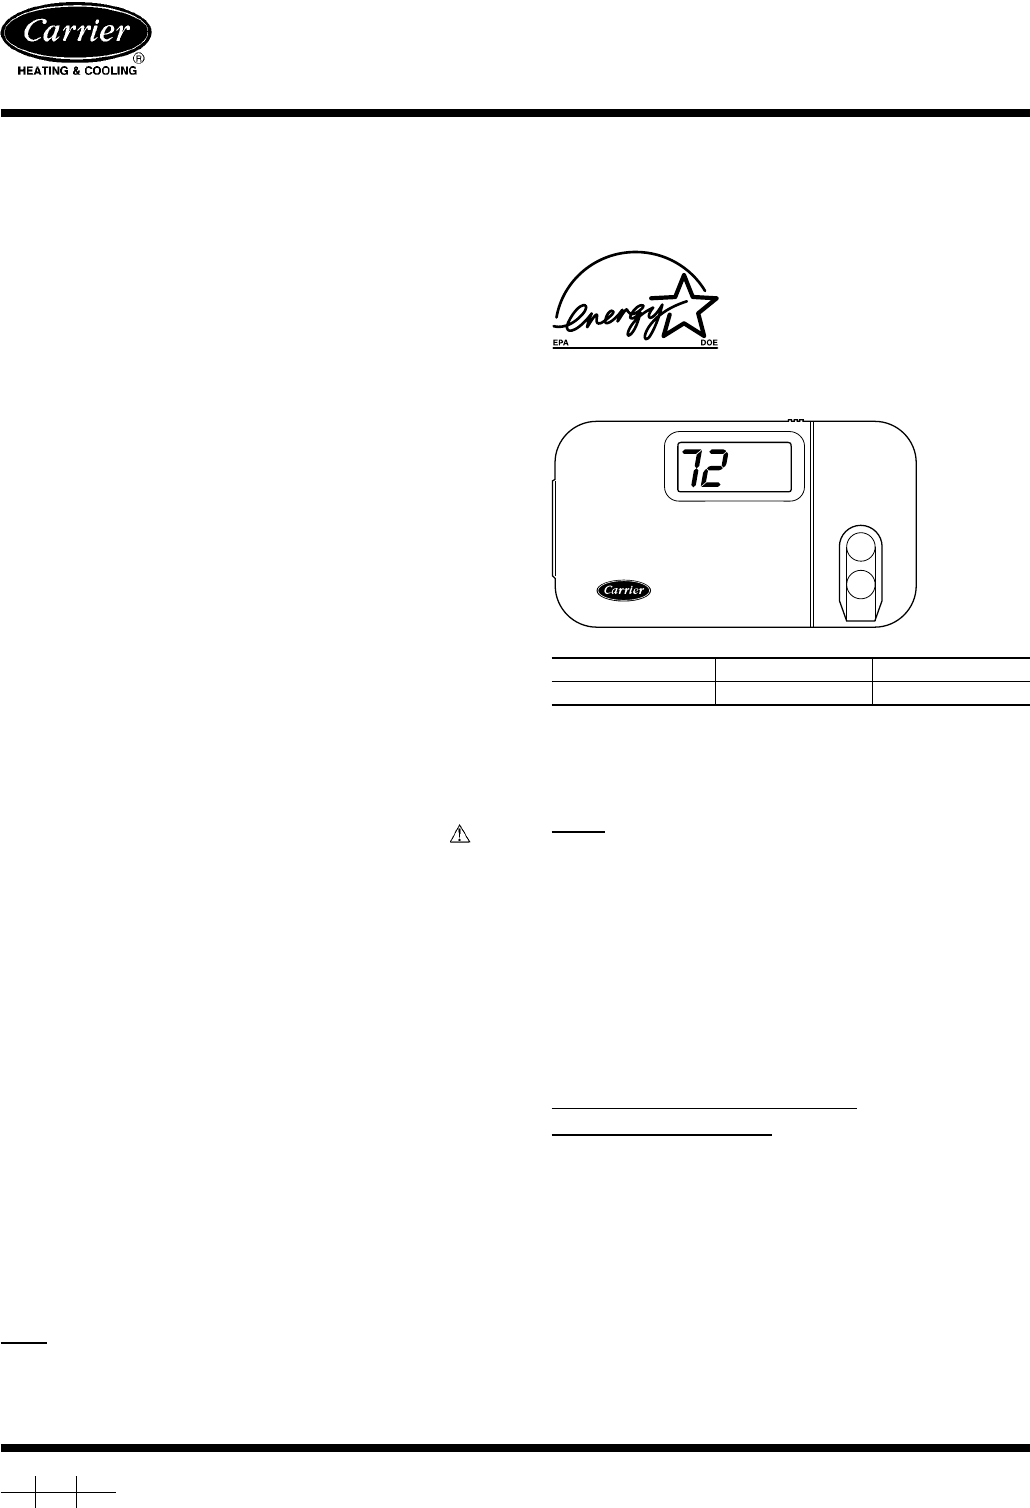 Carrier Thermostat Instruction Manual Wiring A